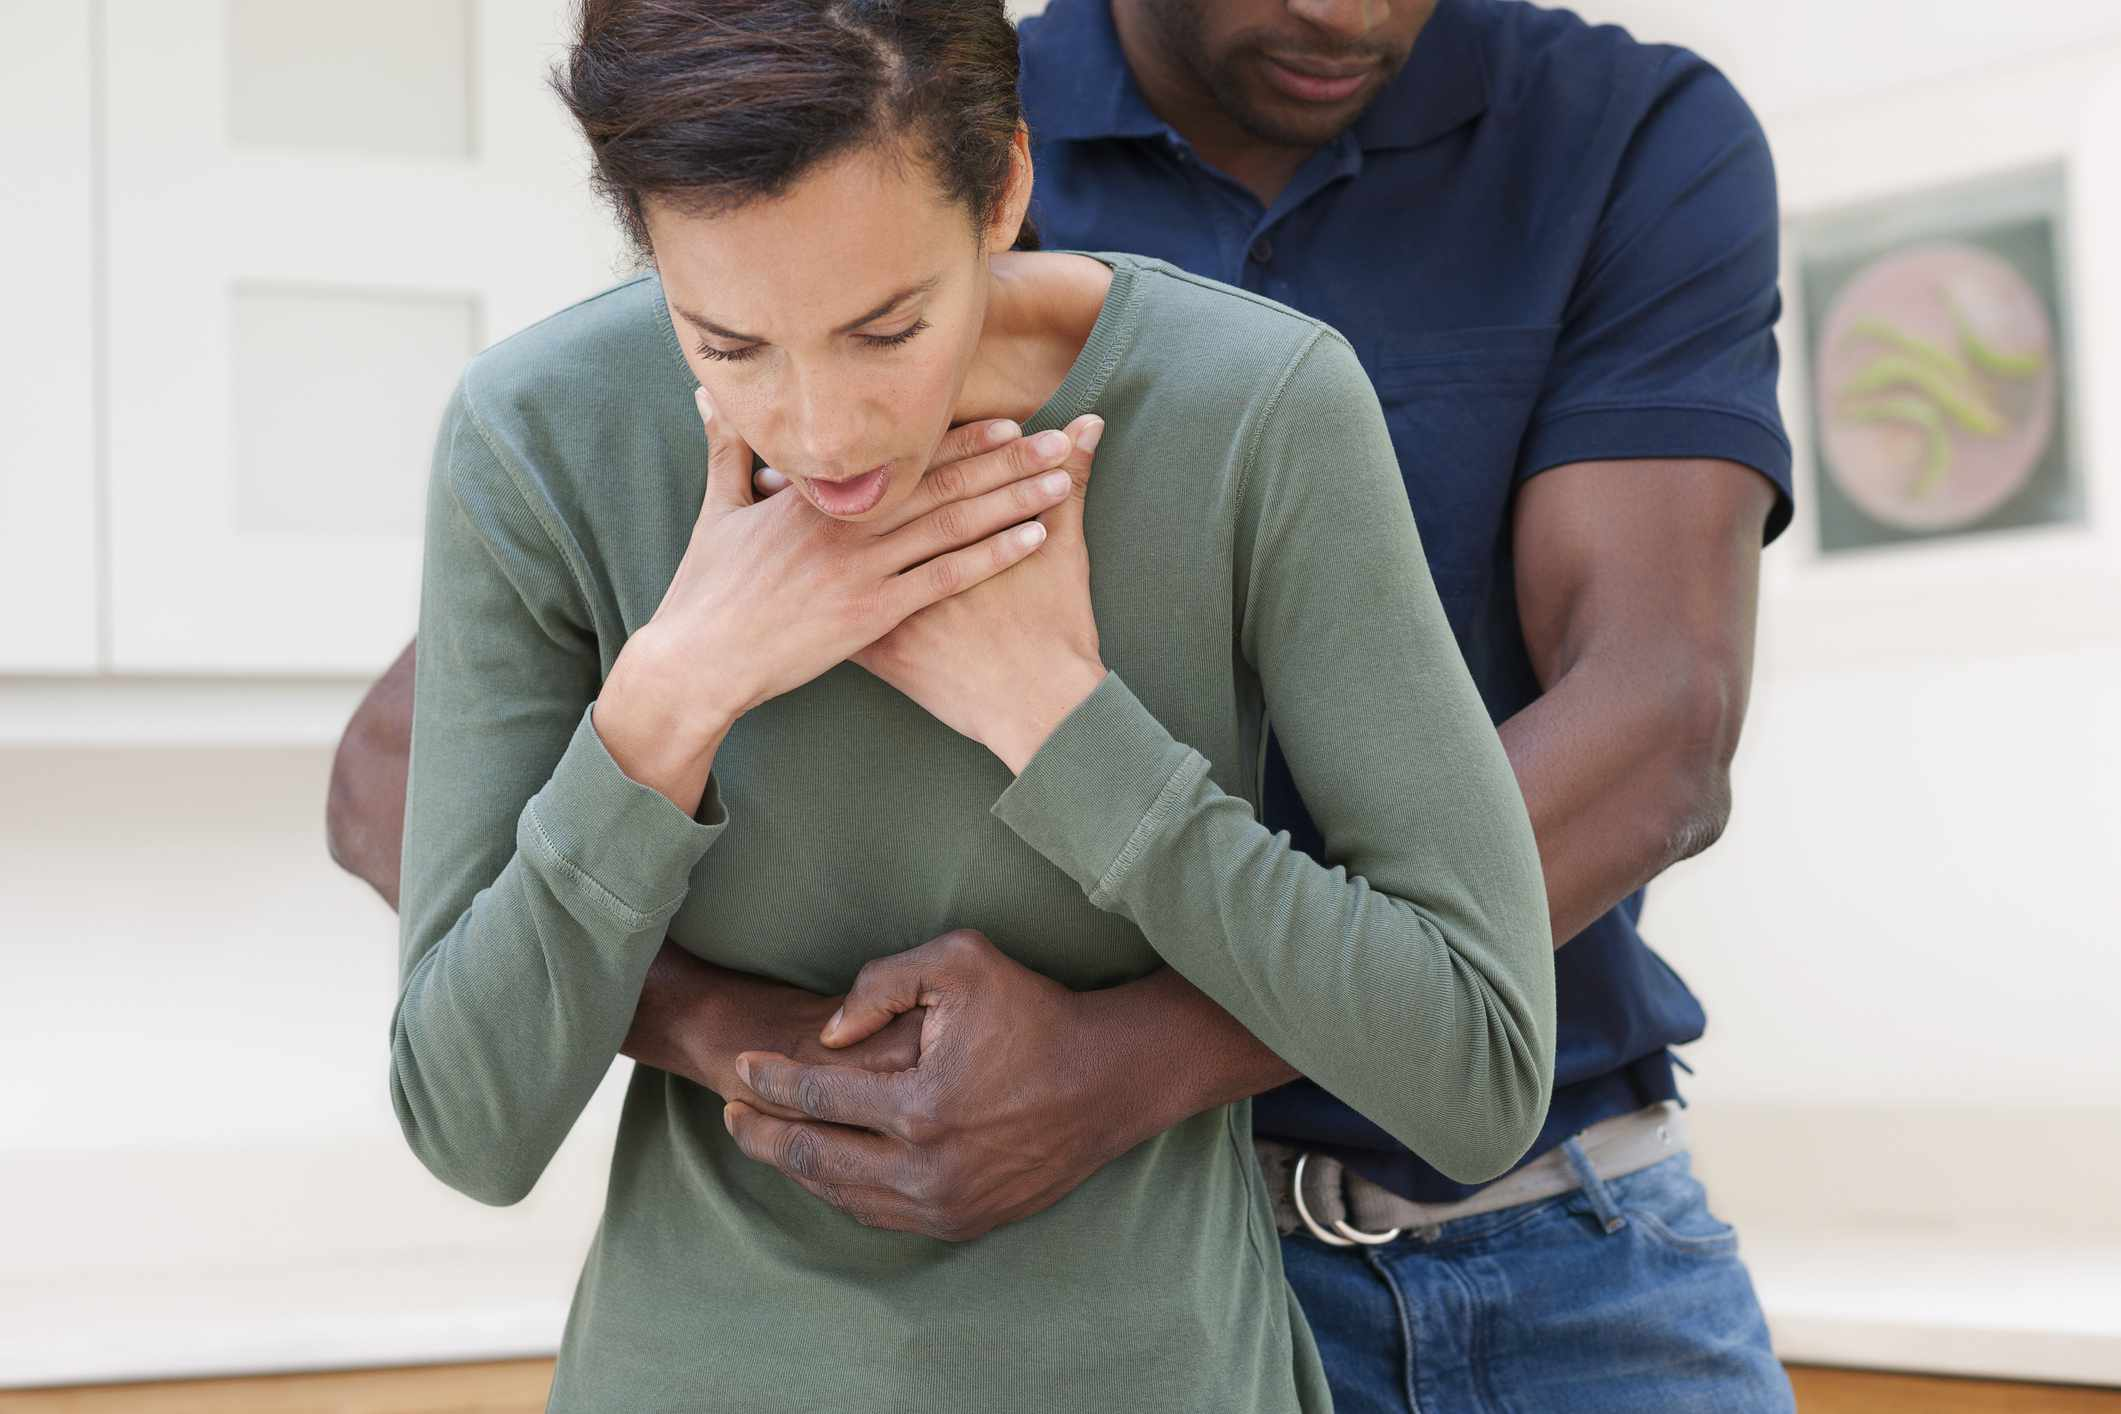 Man performing the Heimlich manoeuvre on a choking woman